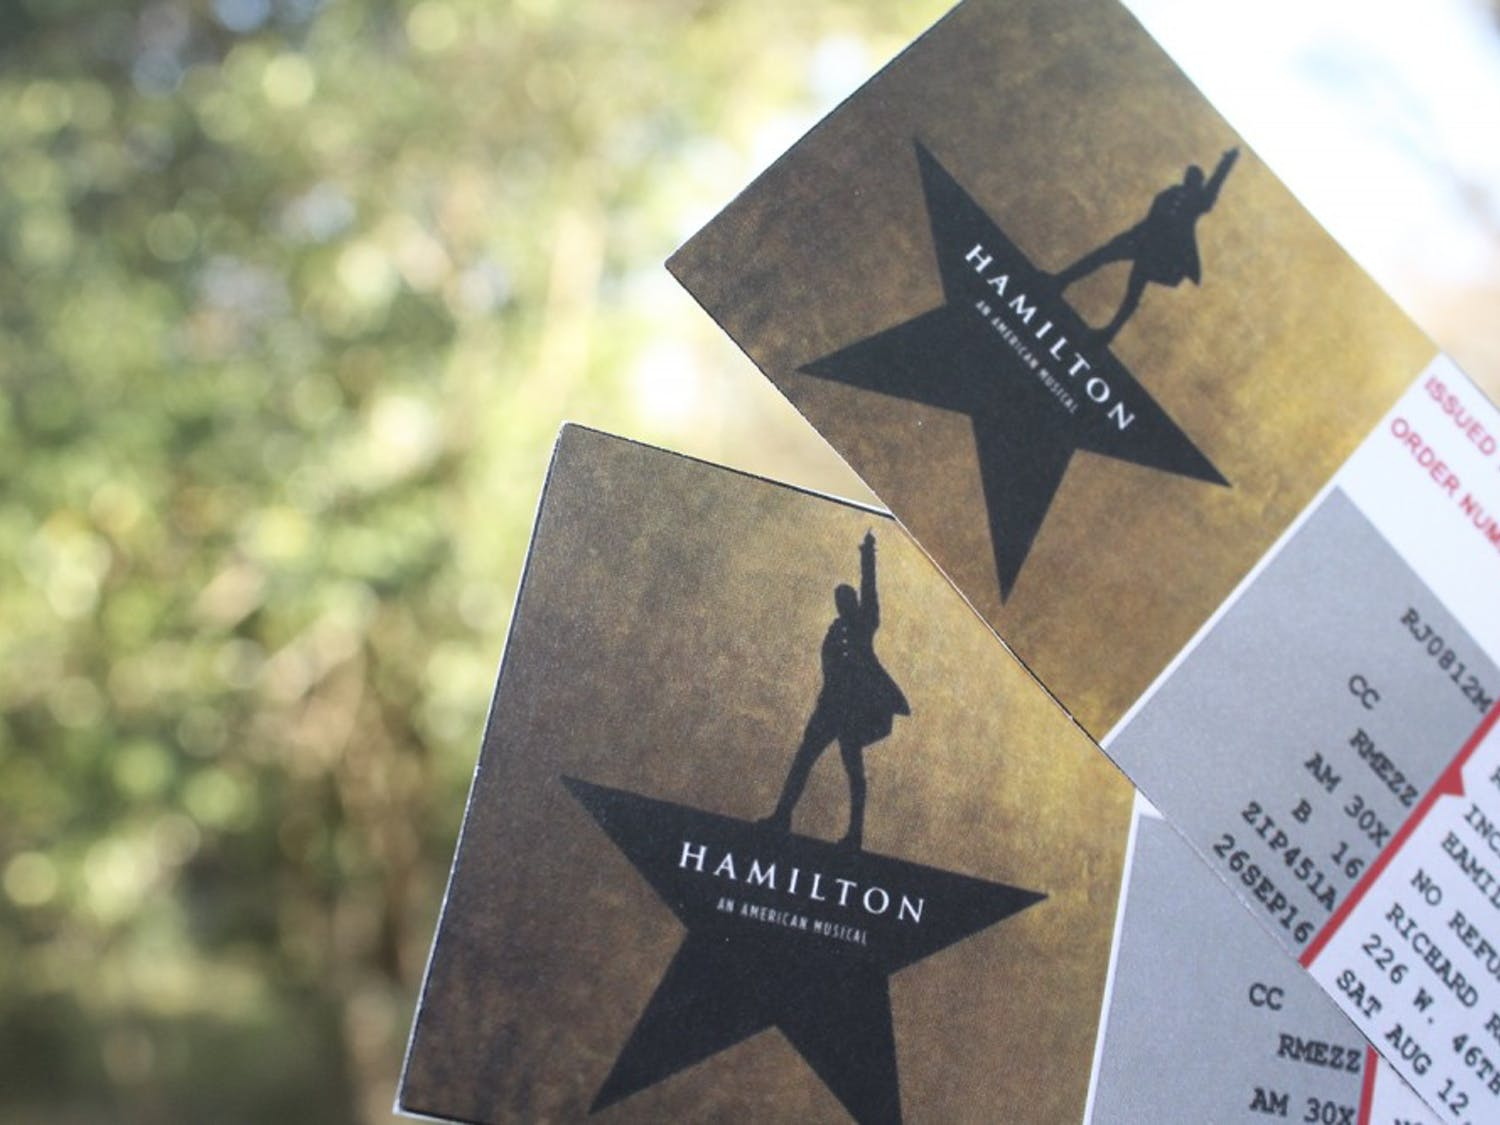 Hamilton the Musical will be showing in the Durham Performing Arts Center starting in the fall of 2018.